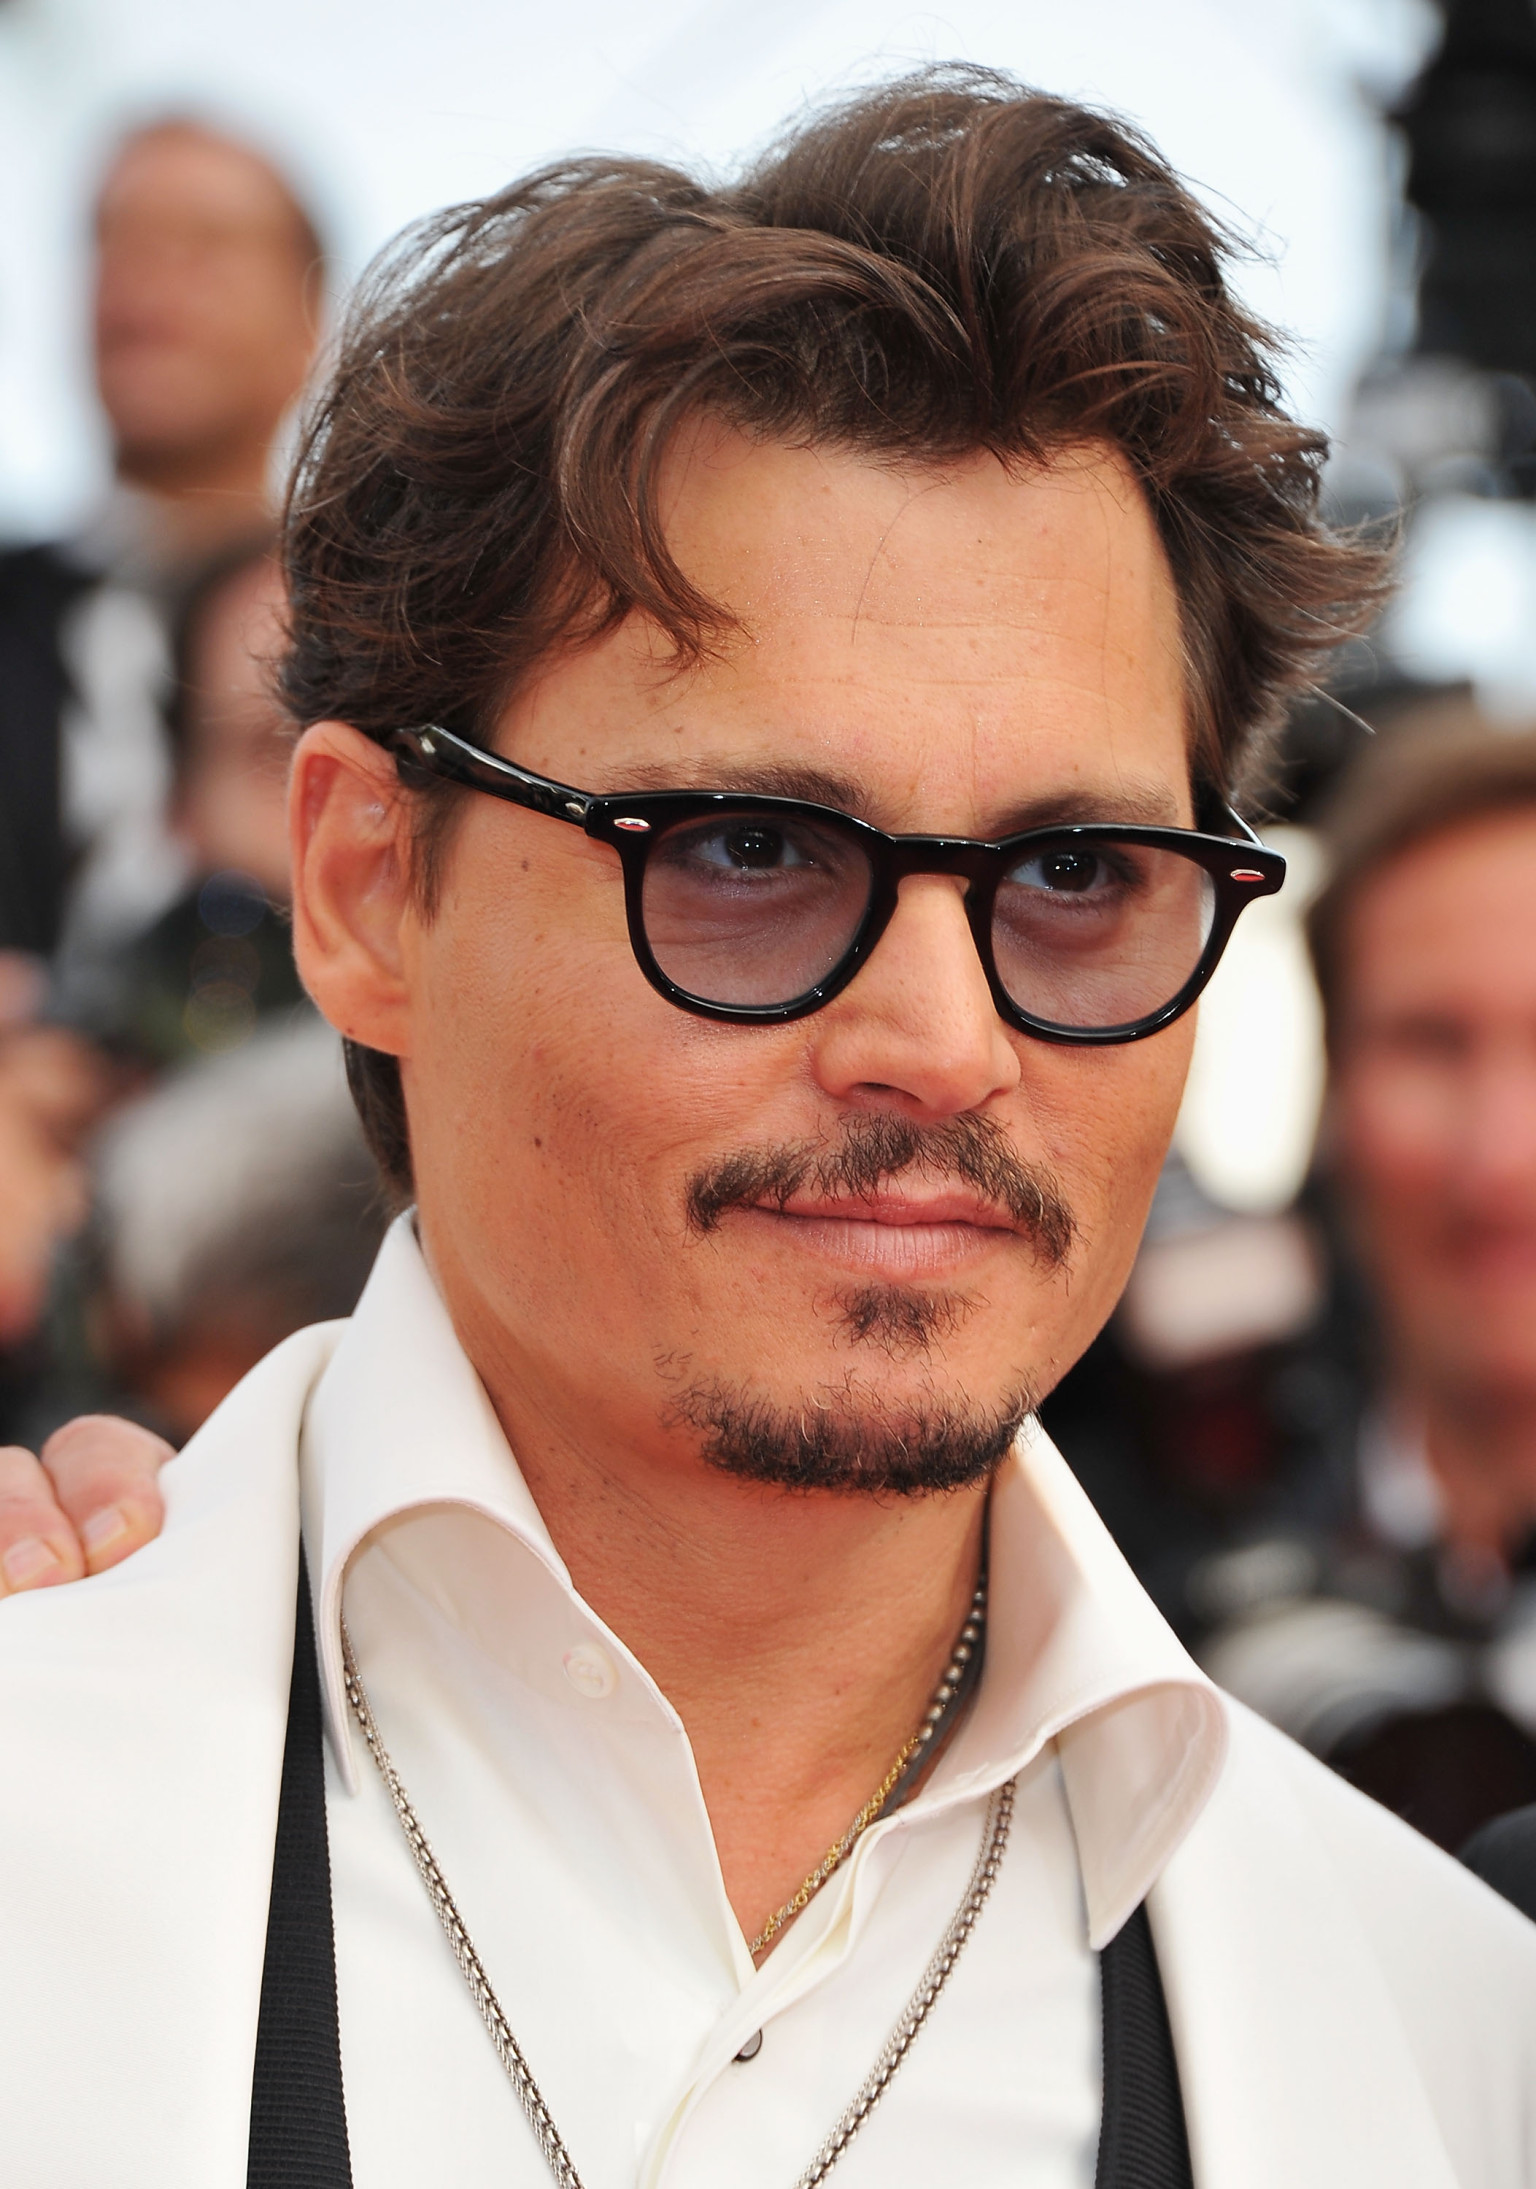 Johnny Depp Put A Huge Scorpion In His Mouth For Fun ... Johnny Depp